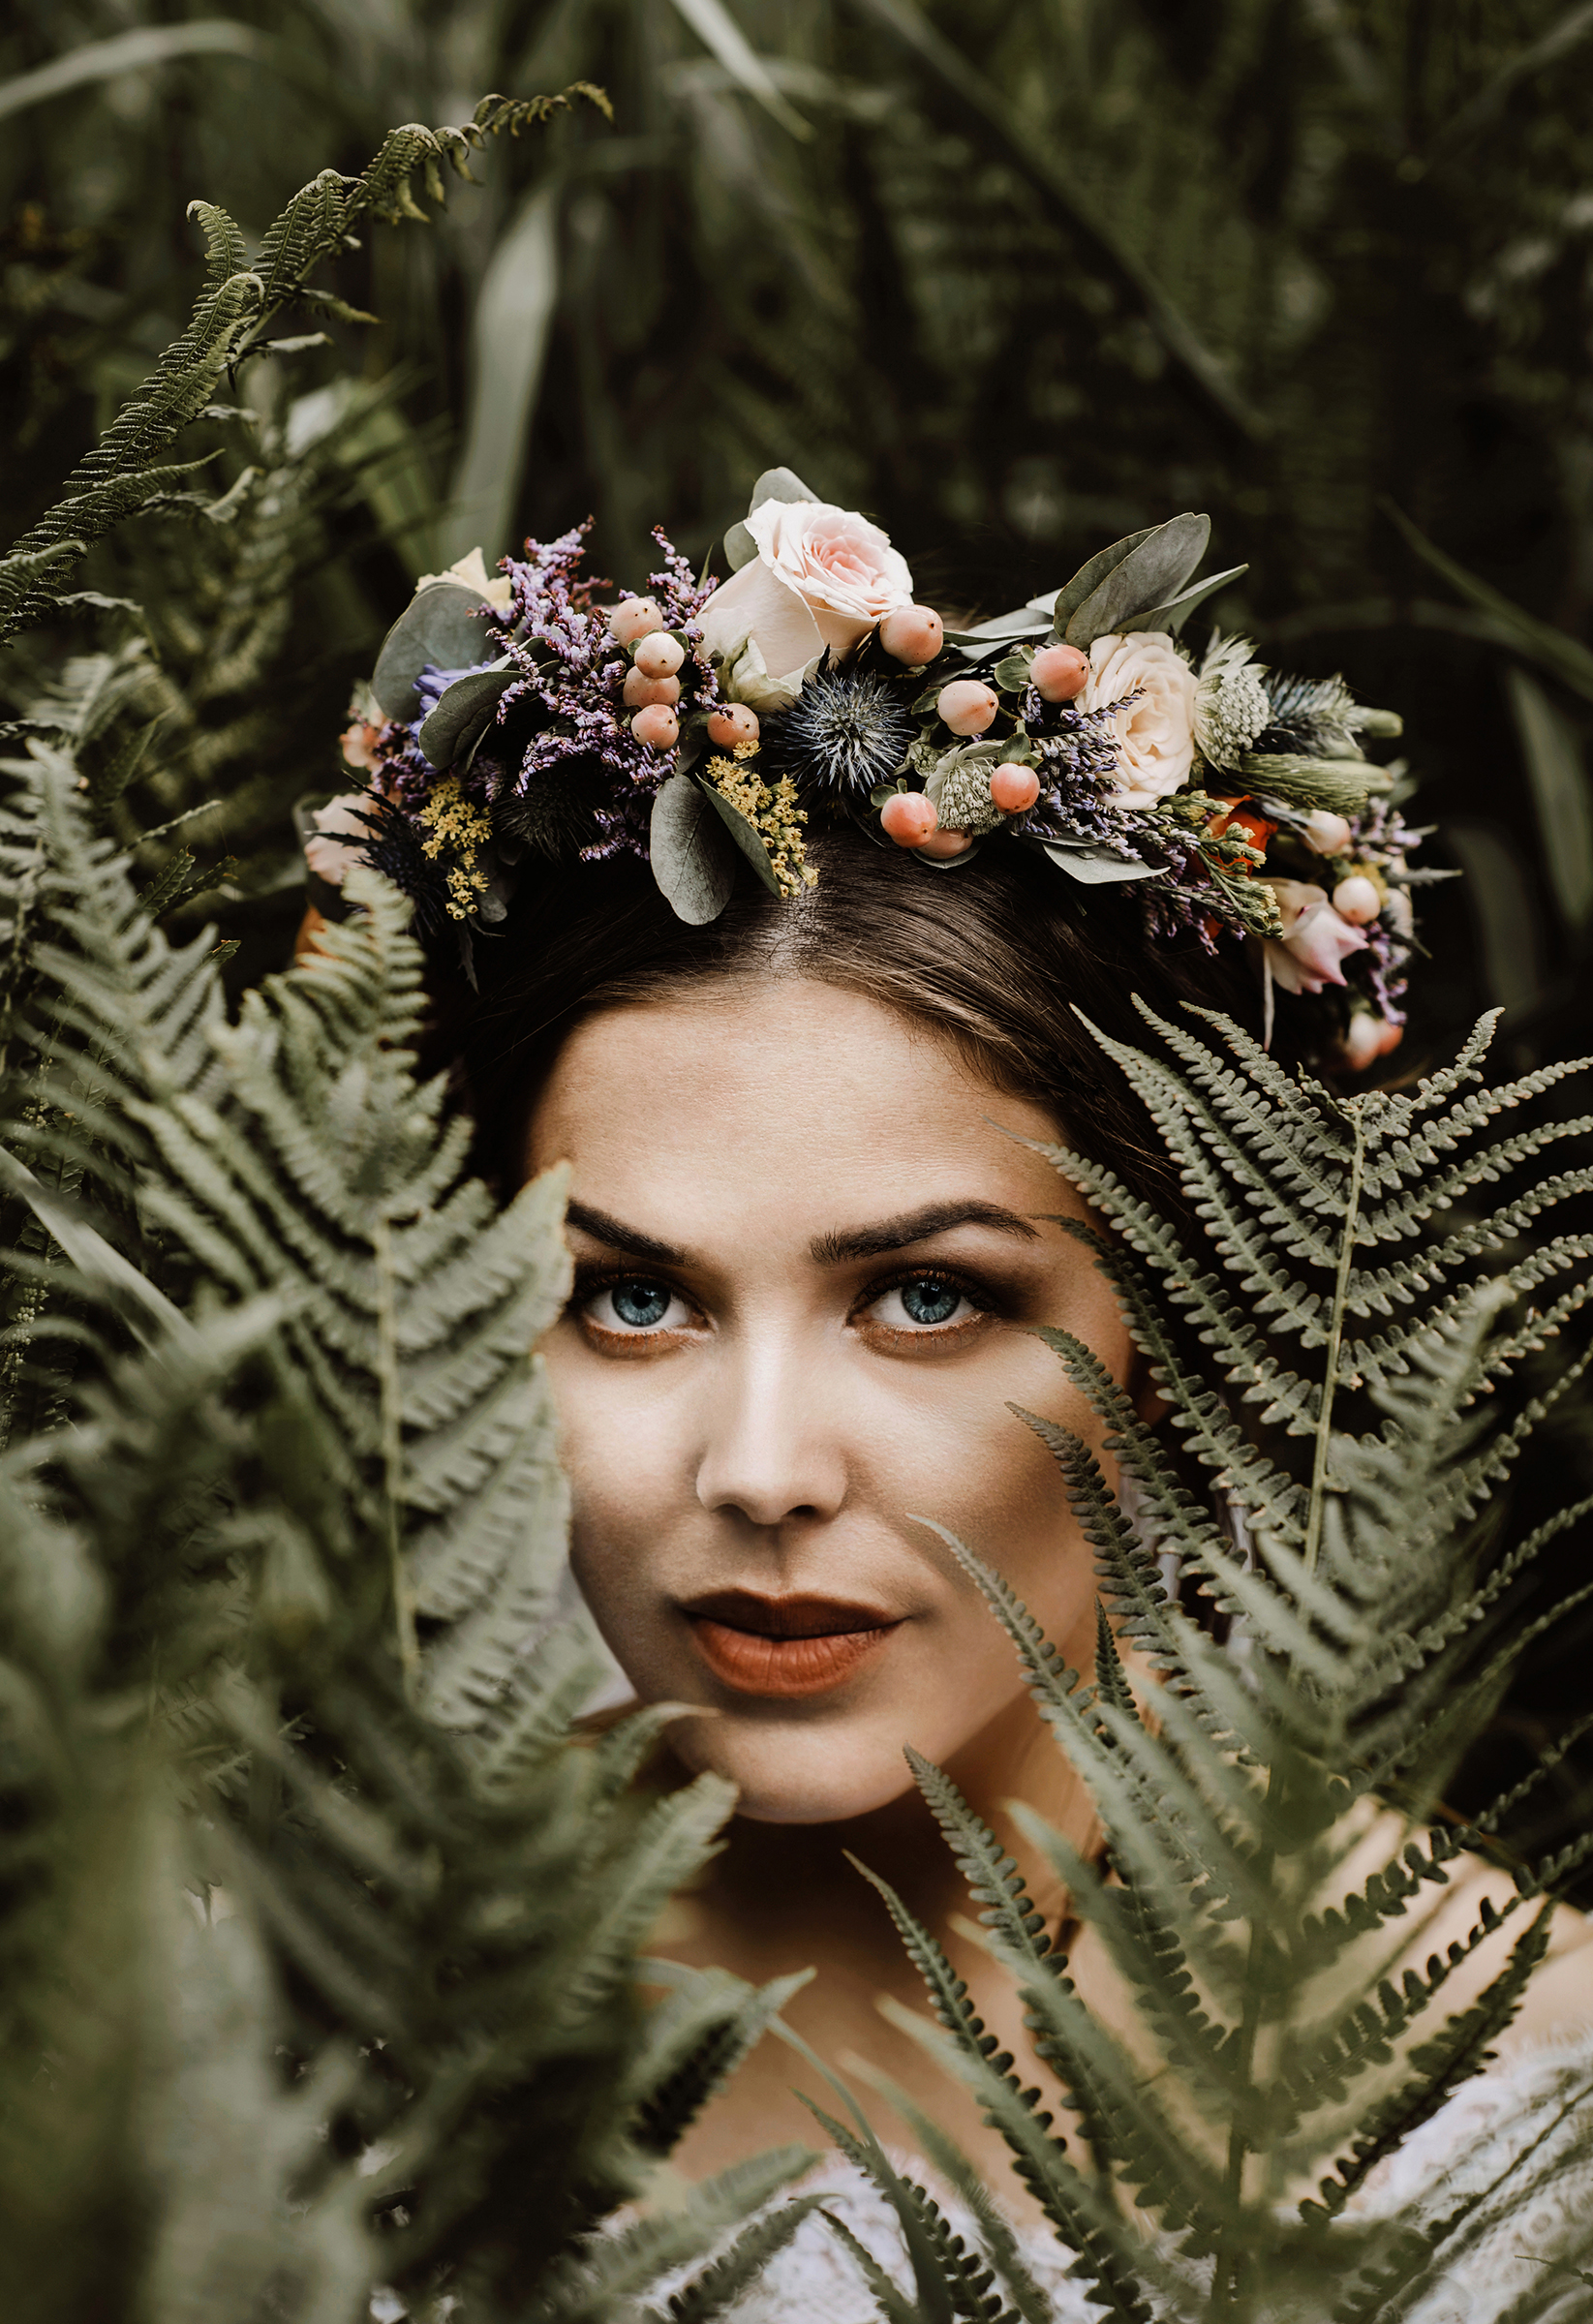 Floral crown of pink roses, sage, berries, and thistle photographed by Froydis Geithus - Sweden